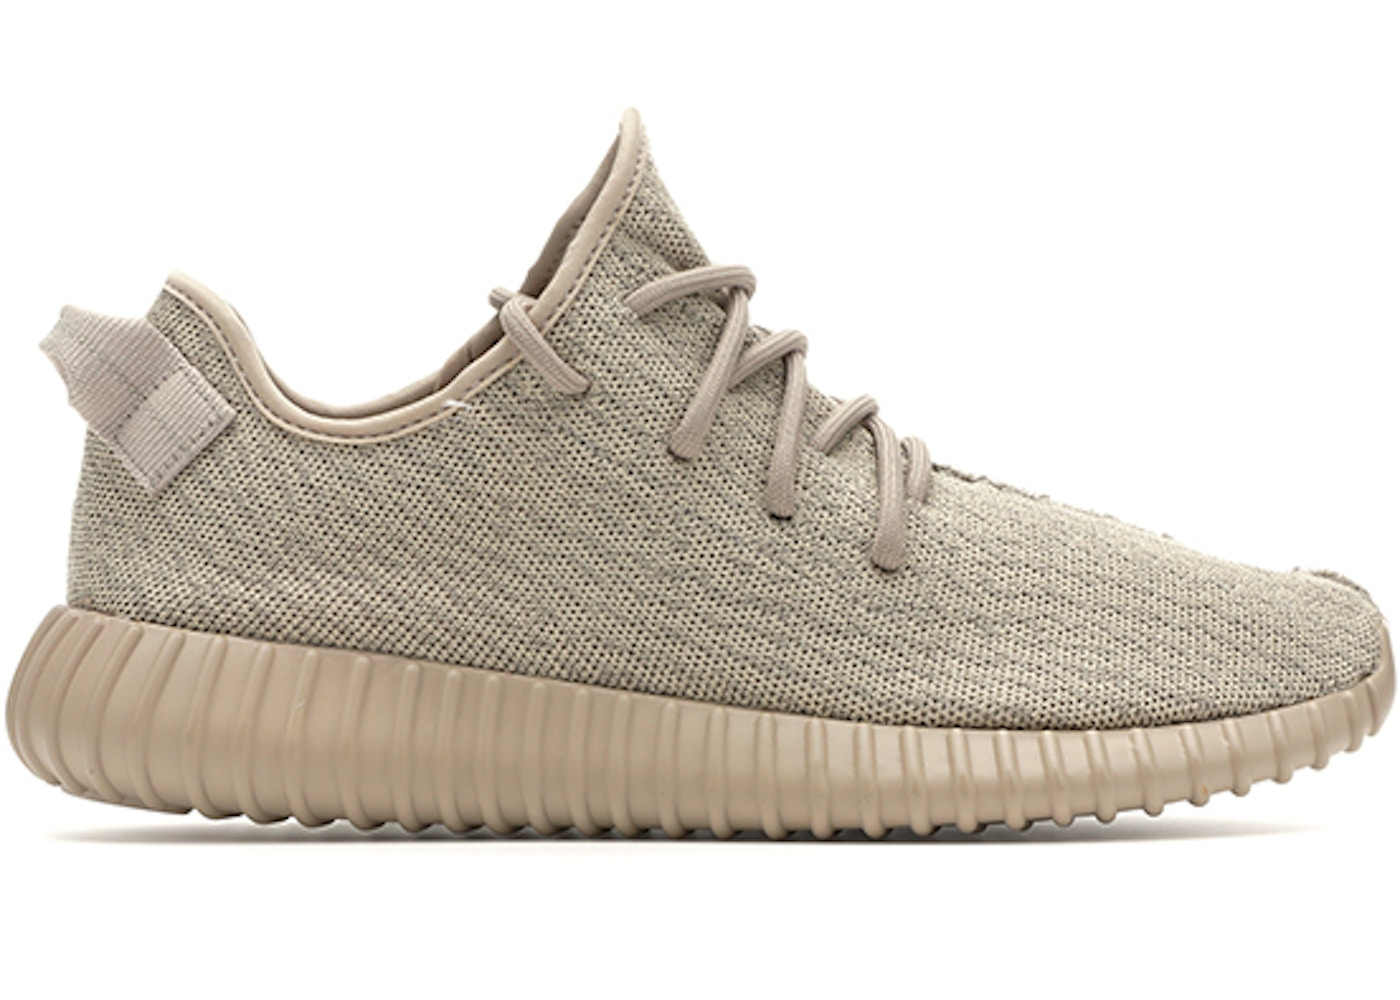 623966f439a0e adidas Yeezy Boost 350 Oxford Tan - AQ2661